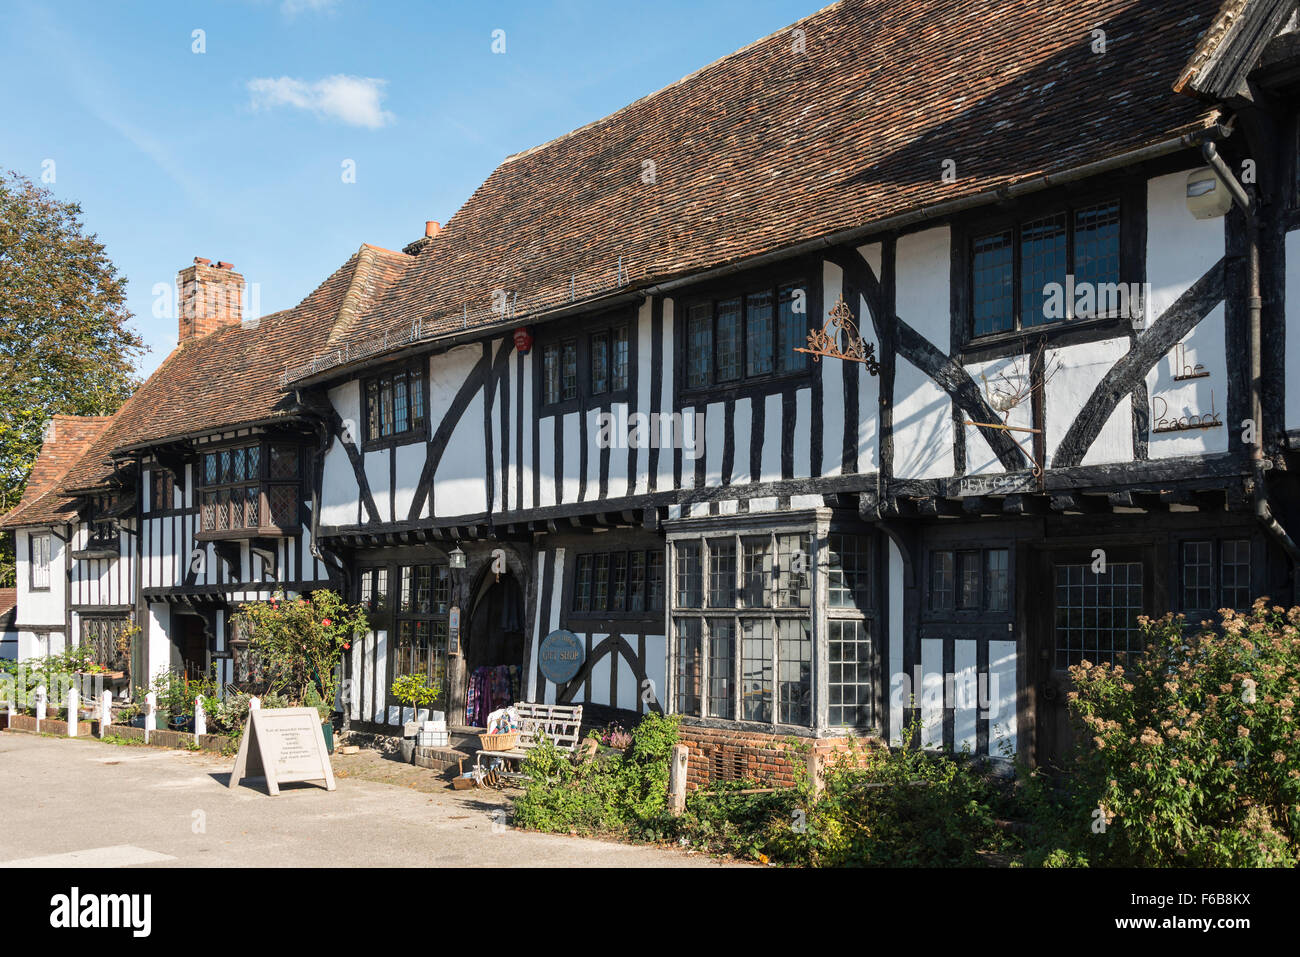 Tudor Cottage Gift Shop, Chilham Square, Chilham, Kent, England, United Kingdom - Stock Image